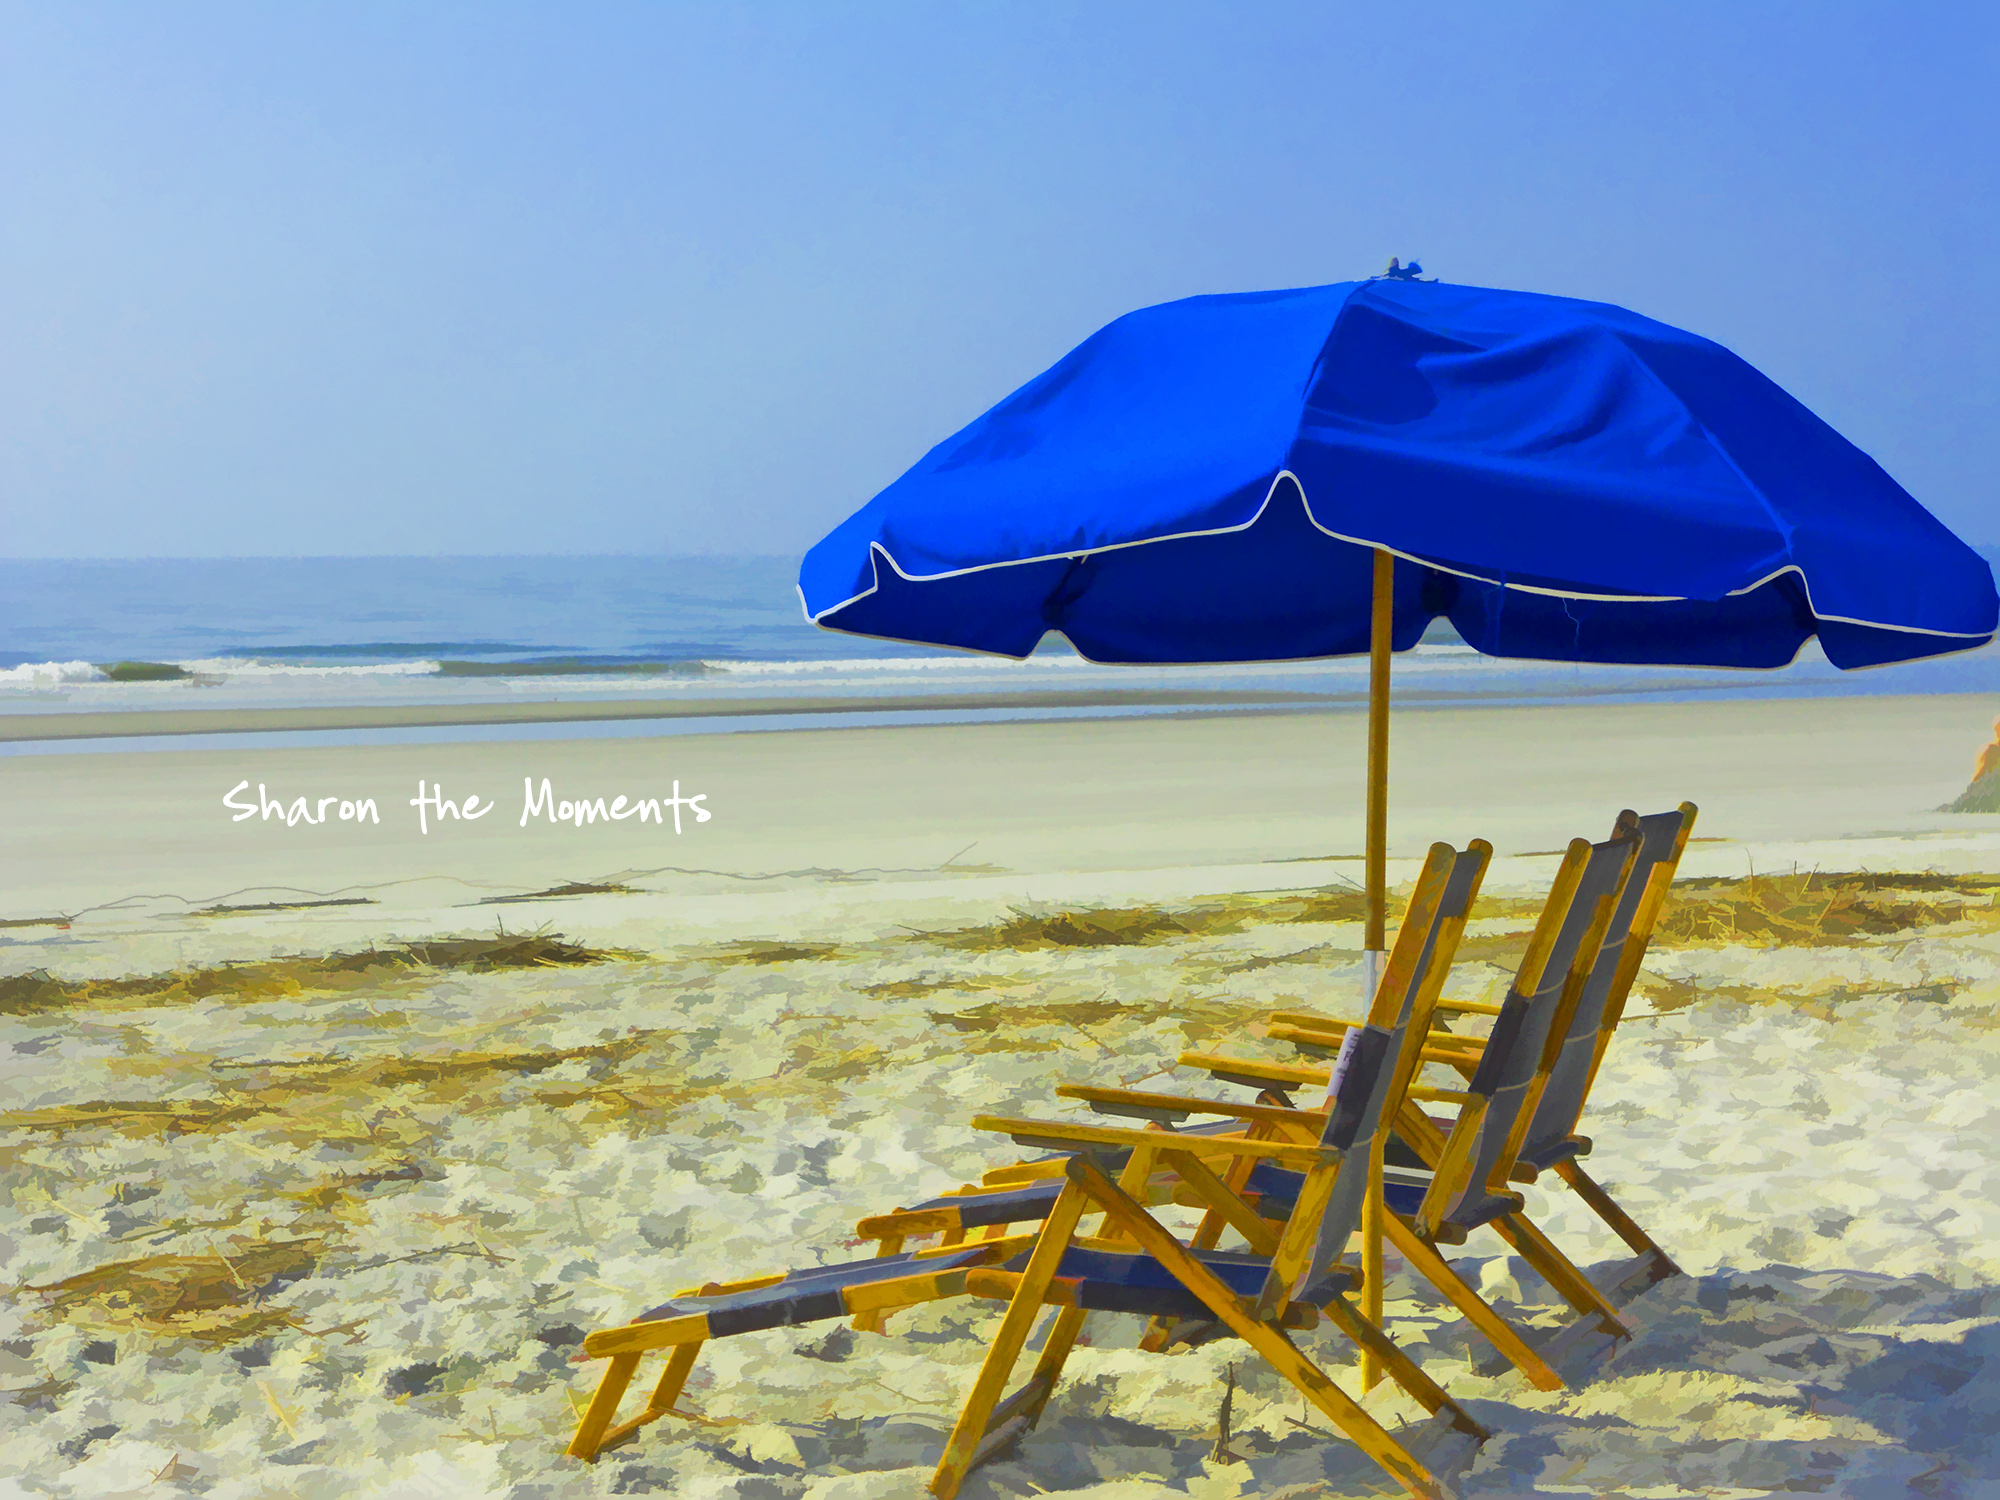 Favorite Photo Friday Hello Friday! Thinking of Sunshine and the Beach|Sharon the Moments blog